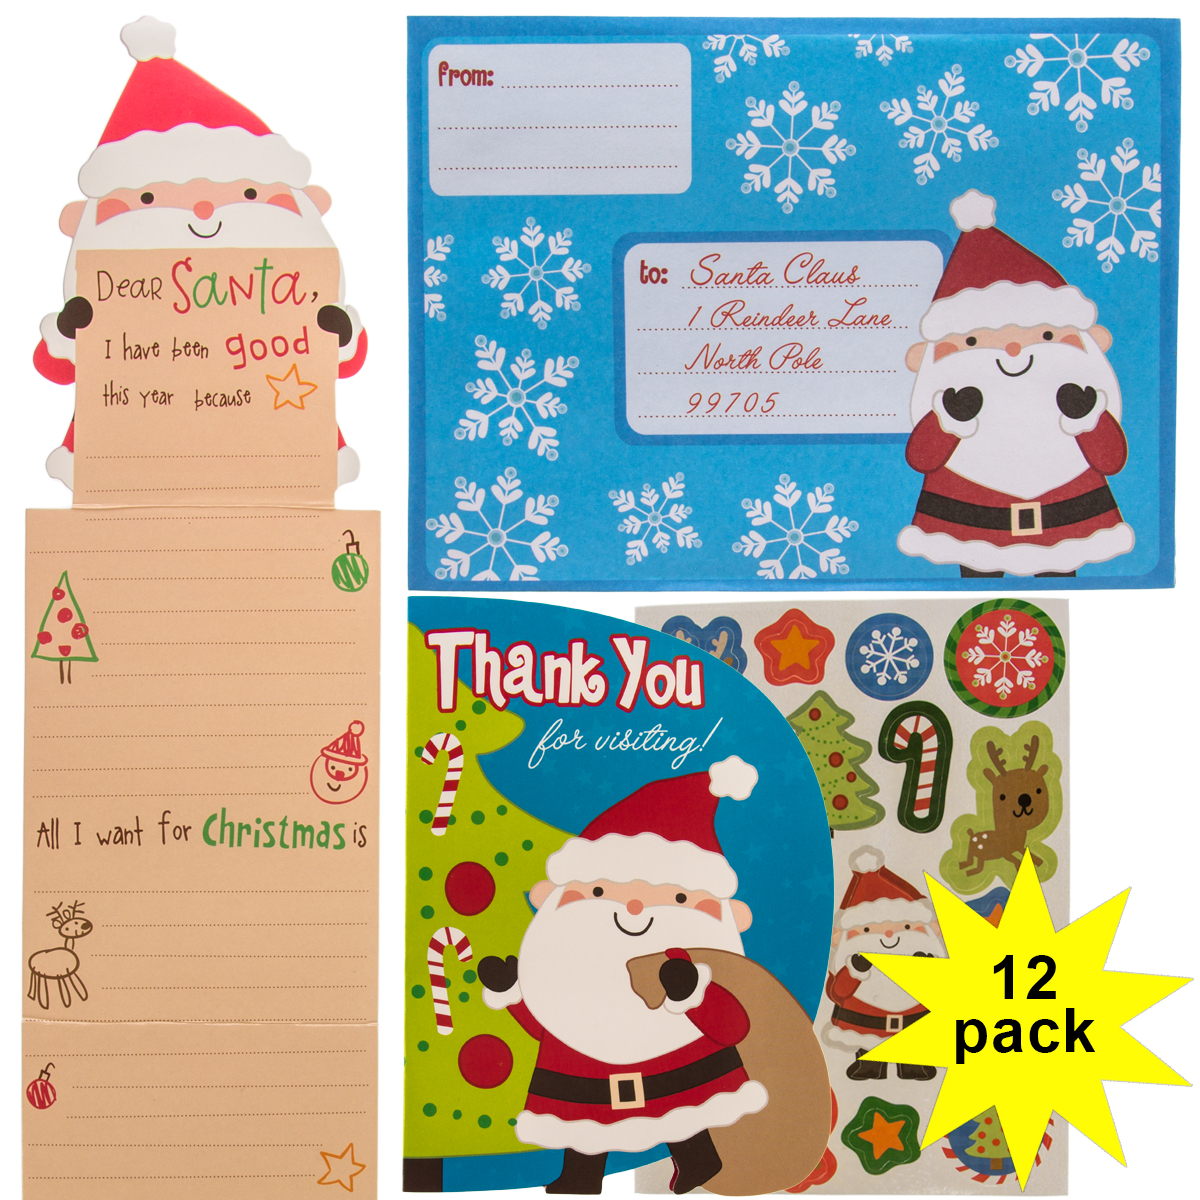 Paper Crafts (12 Pack) Kids Letters to Santa Kits: Christmas Wish List, Stickers, Thank You Cards & Envelopes, Party Favor Bulk Set